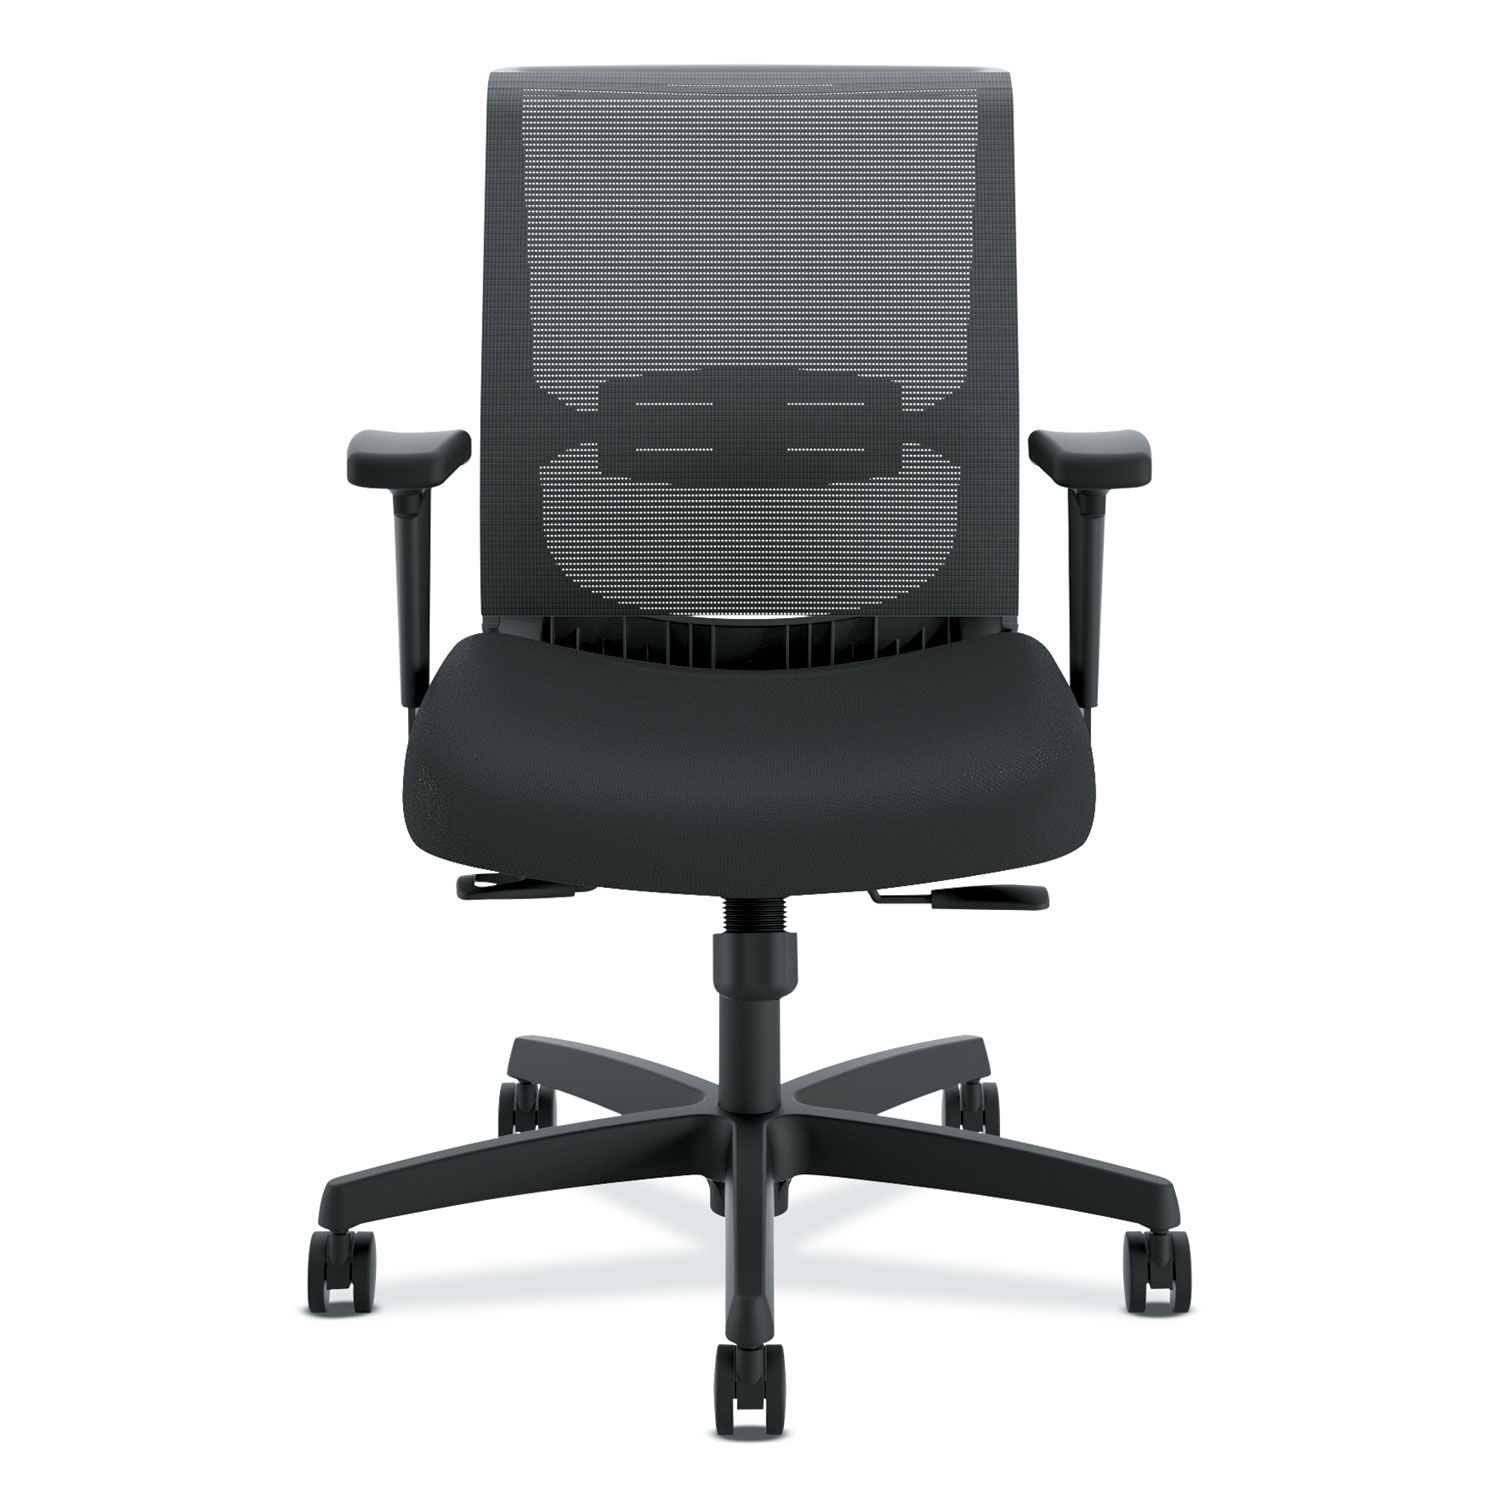 Bayside Office Chair Convergence Chair By Hon Honcmy1aaccf10 Ontimesupplies